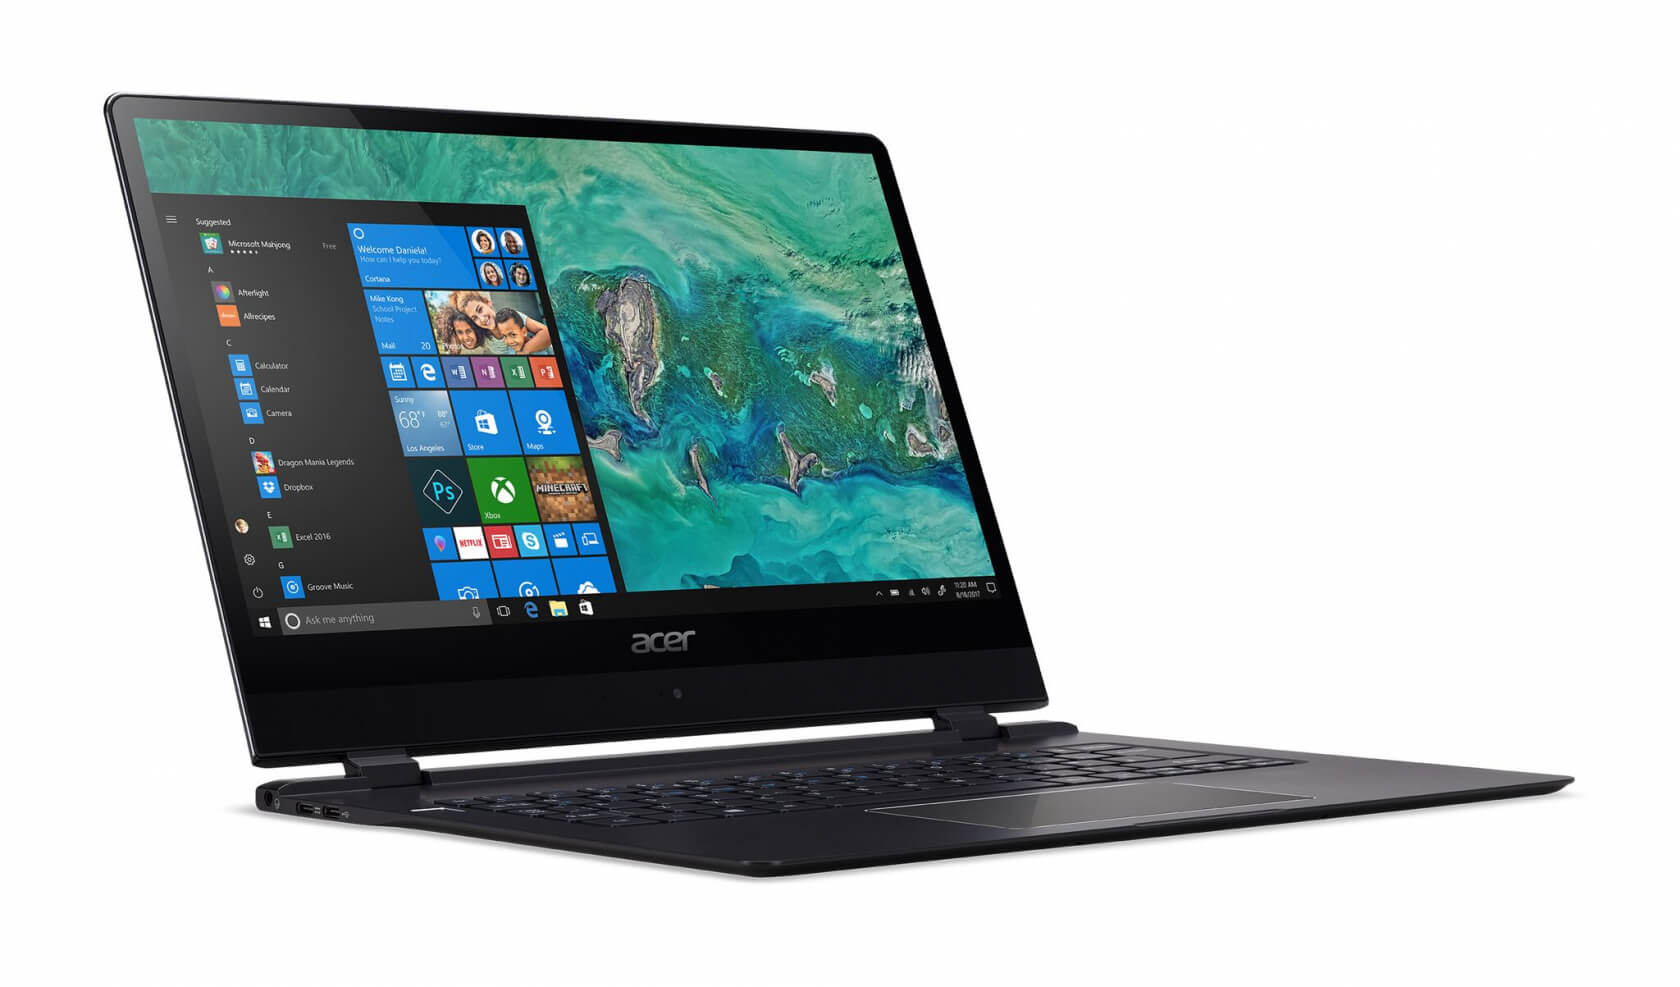 Acer Swift 7 (2018) initial review: The laptop gets smartphone thin